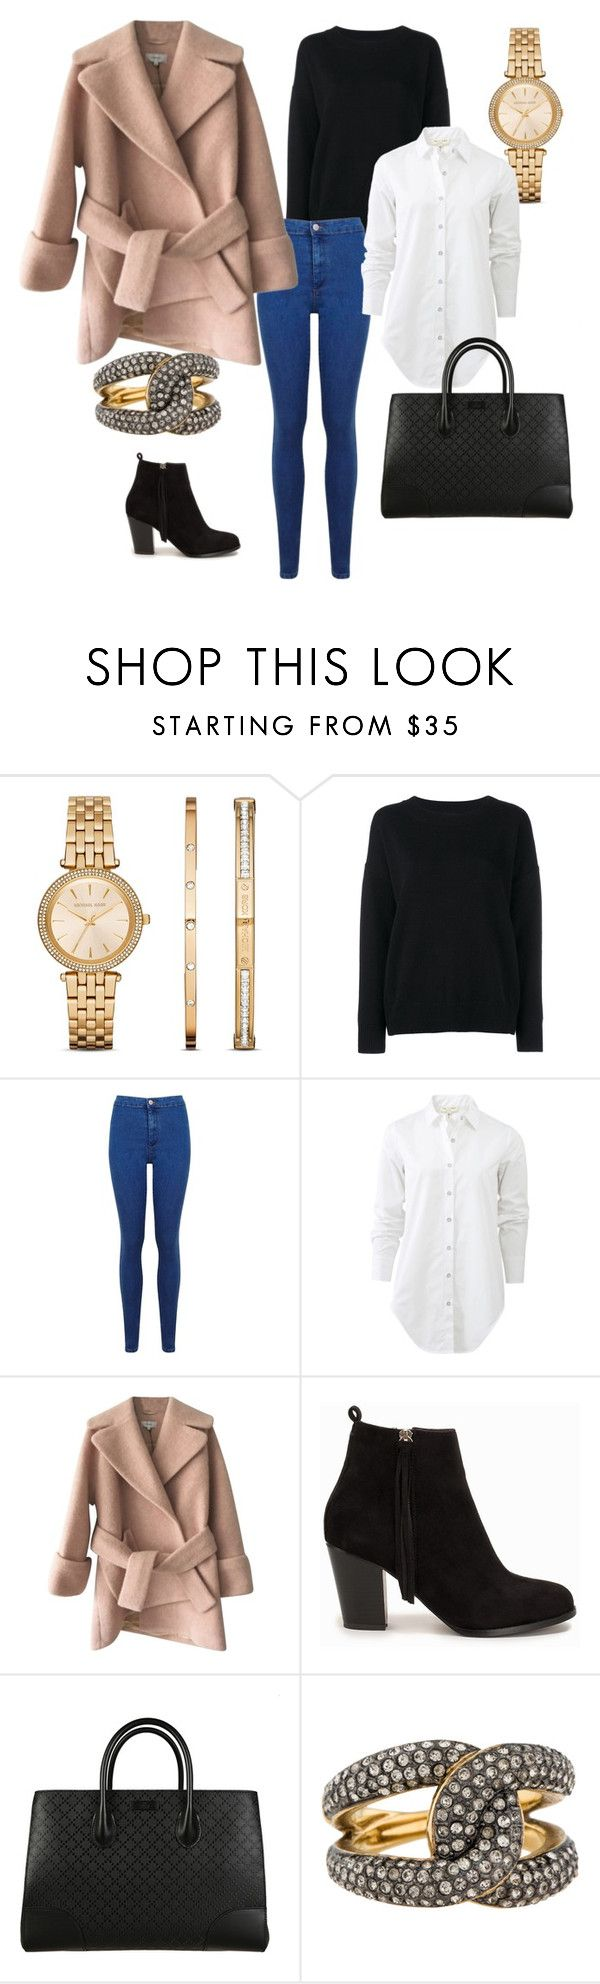 """""""Untitled #26"""" by klara-kandare ❤ liked on Polyvore featuring Michael Kors, Frame Denim, Miss Selfridge, rag & bone, Carven, Nly Shoes, Gucci, women's clothing, women and female"""